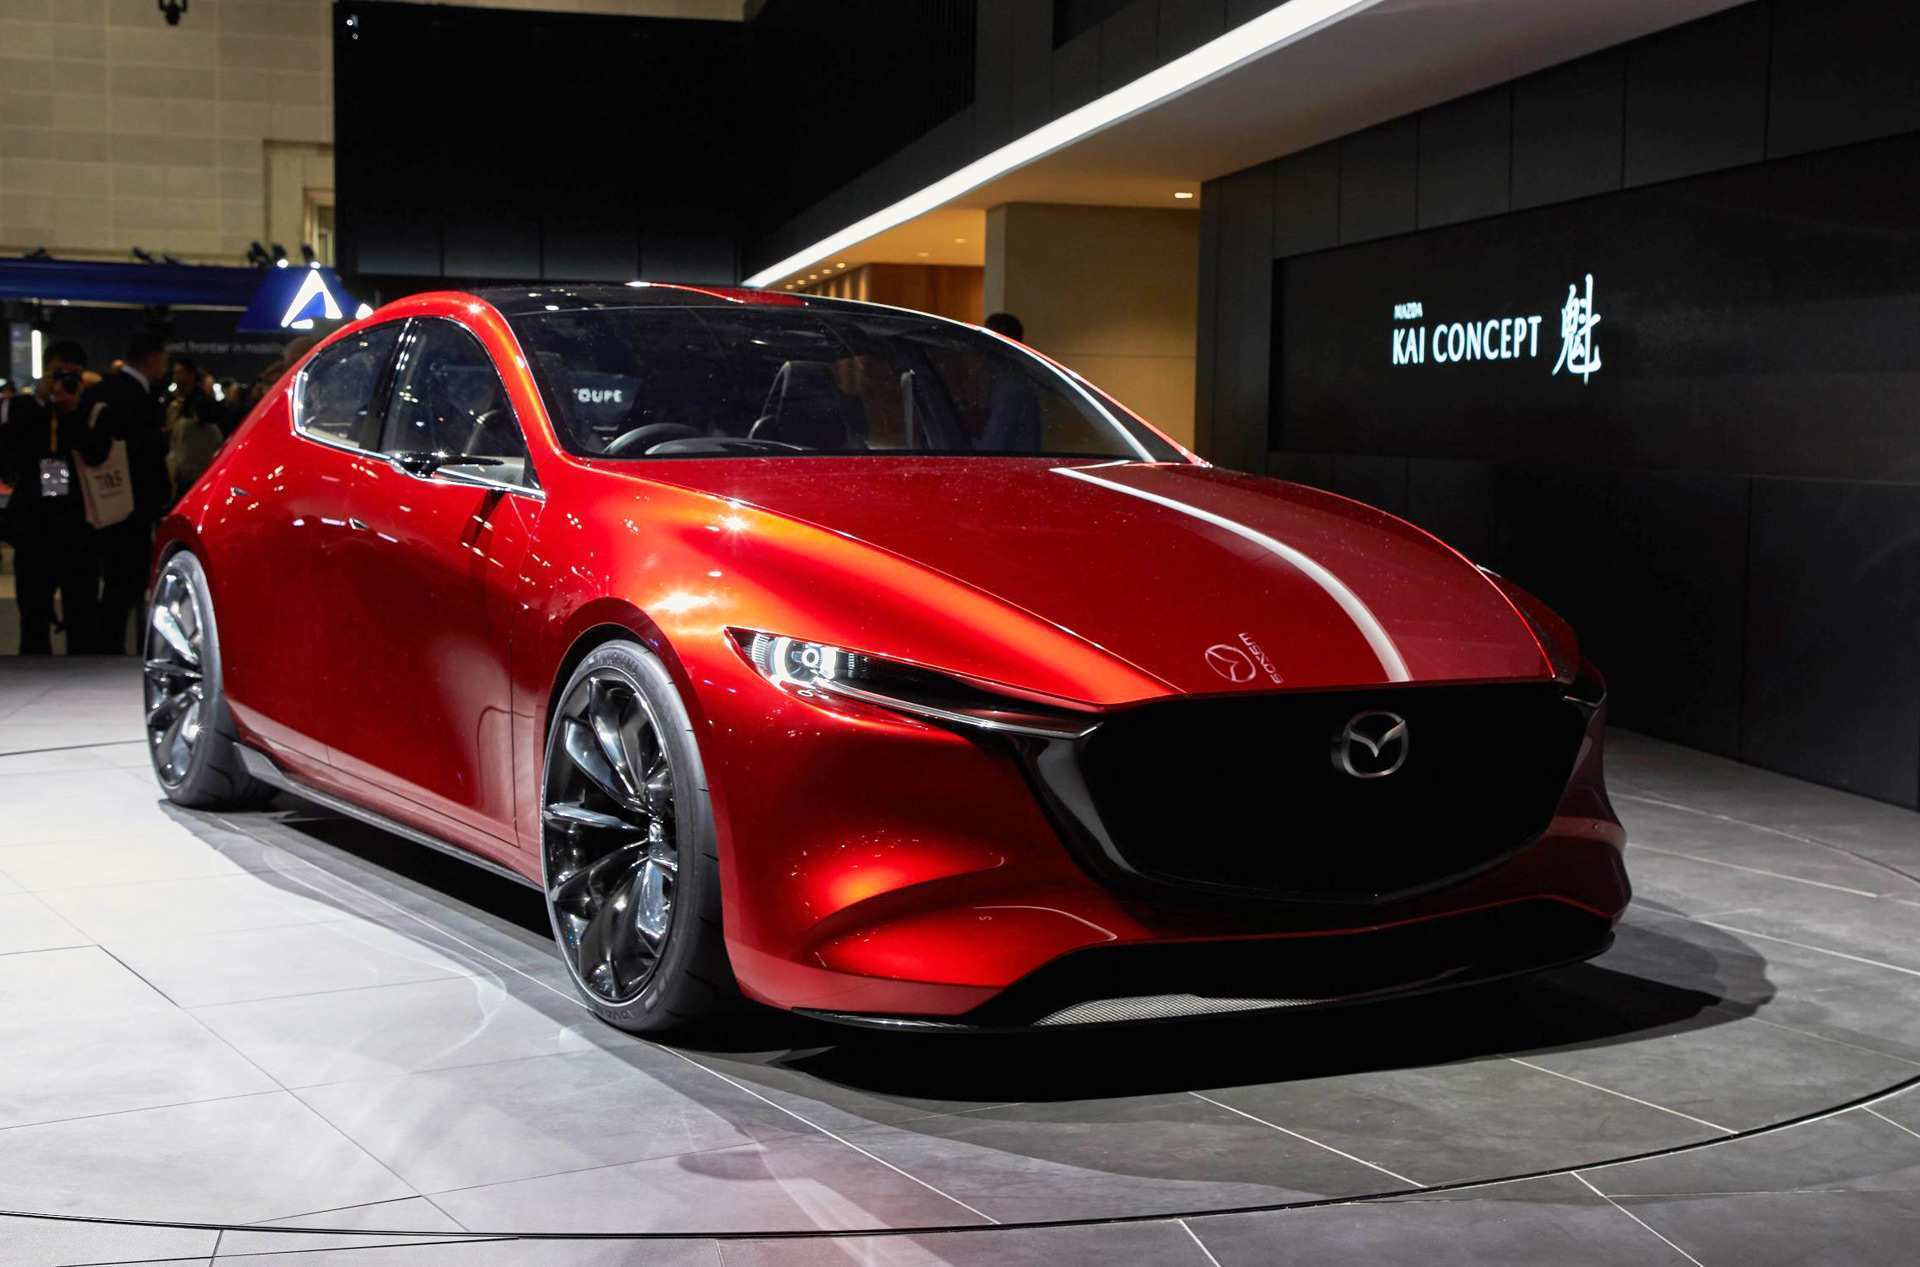 43 Gallery of 2020 Mazda 3 Spy Shots Style for 2020 Mazda 3 Spy Shots